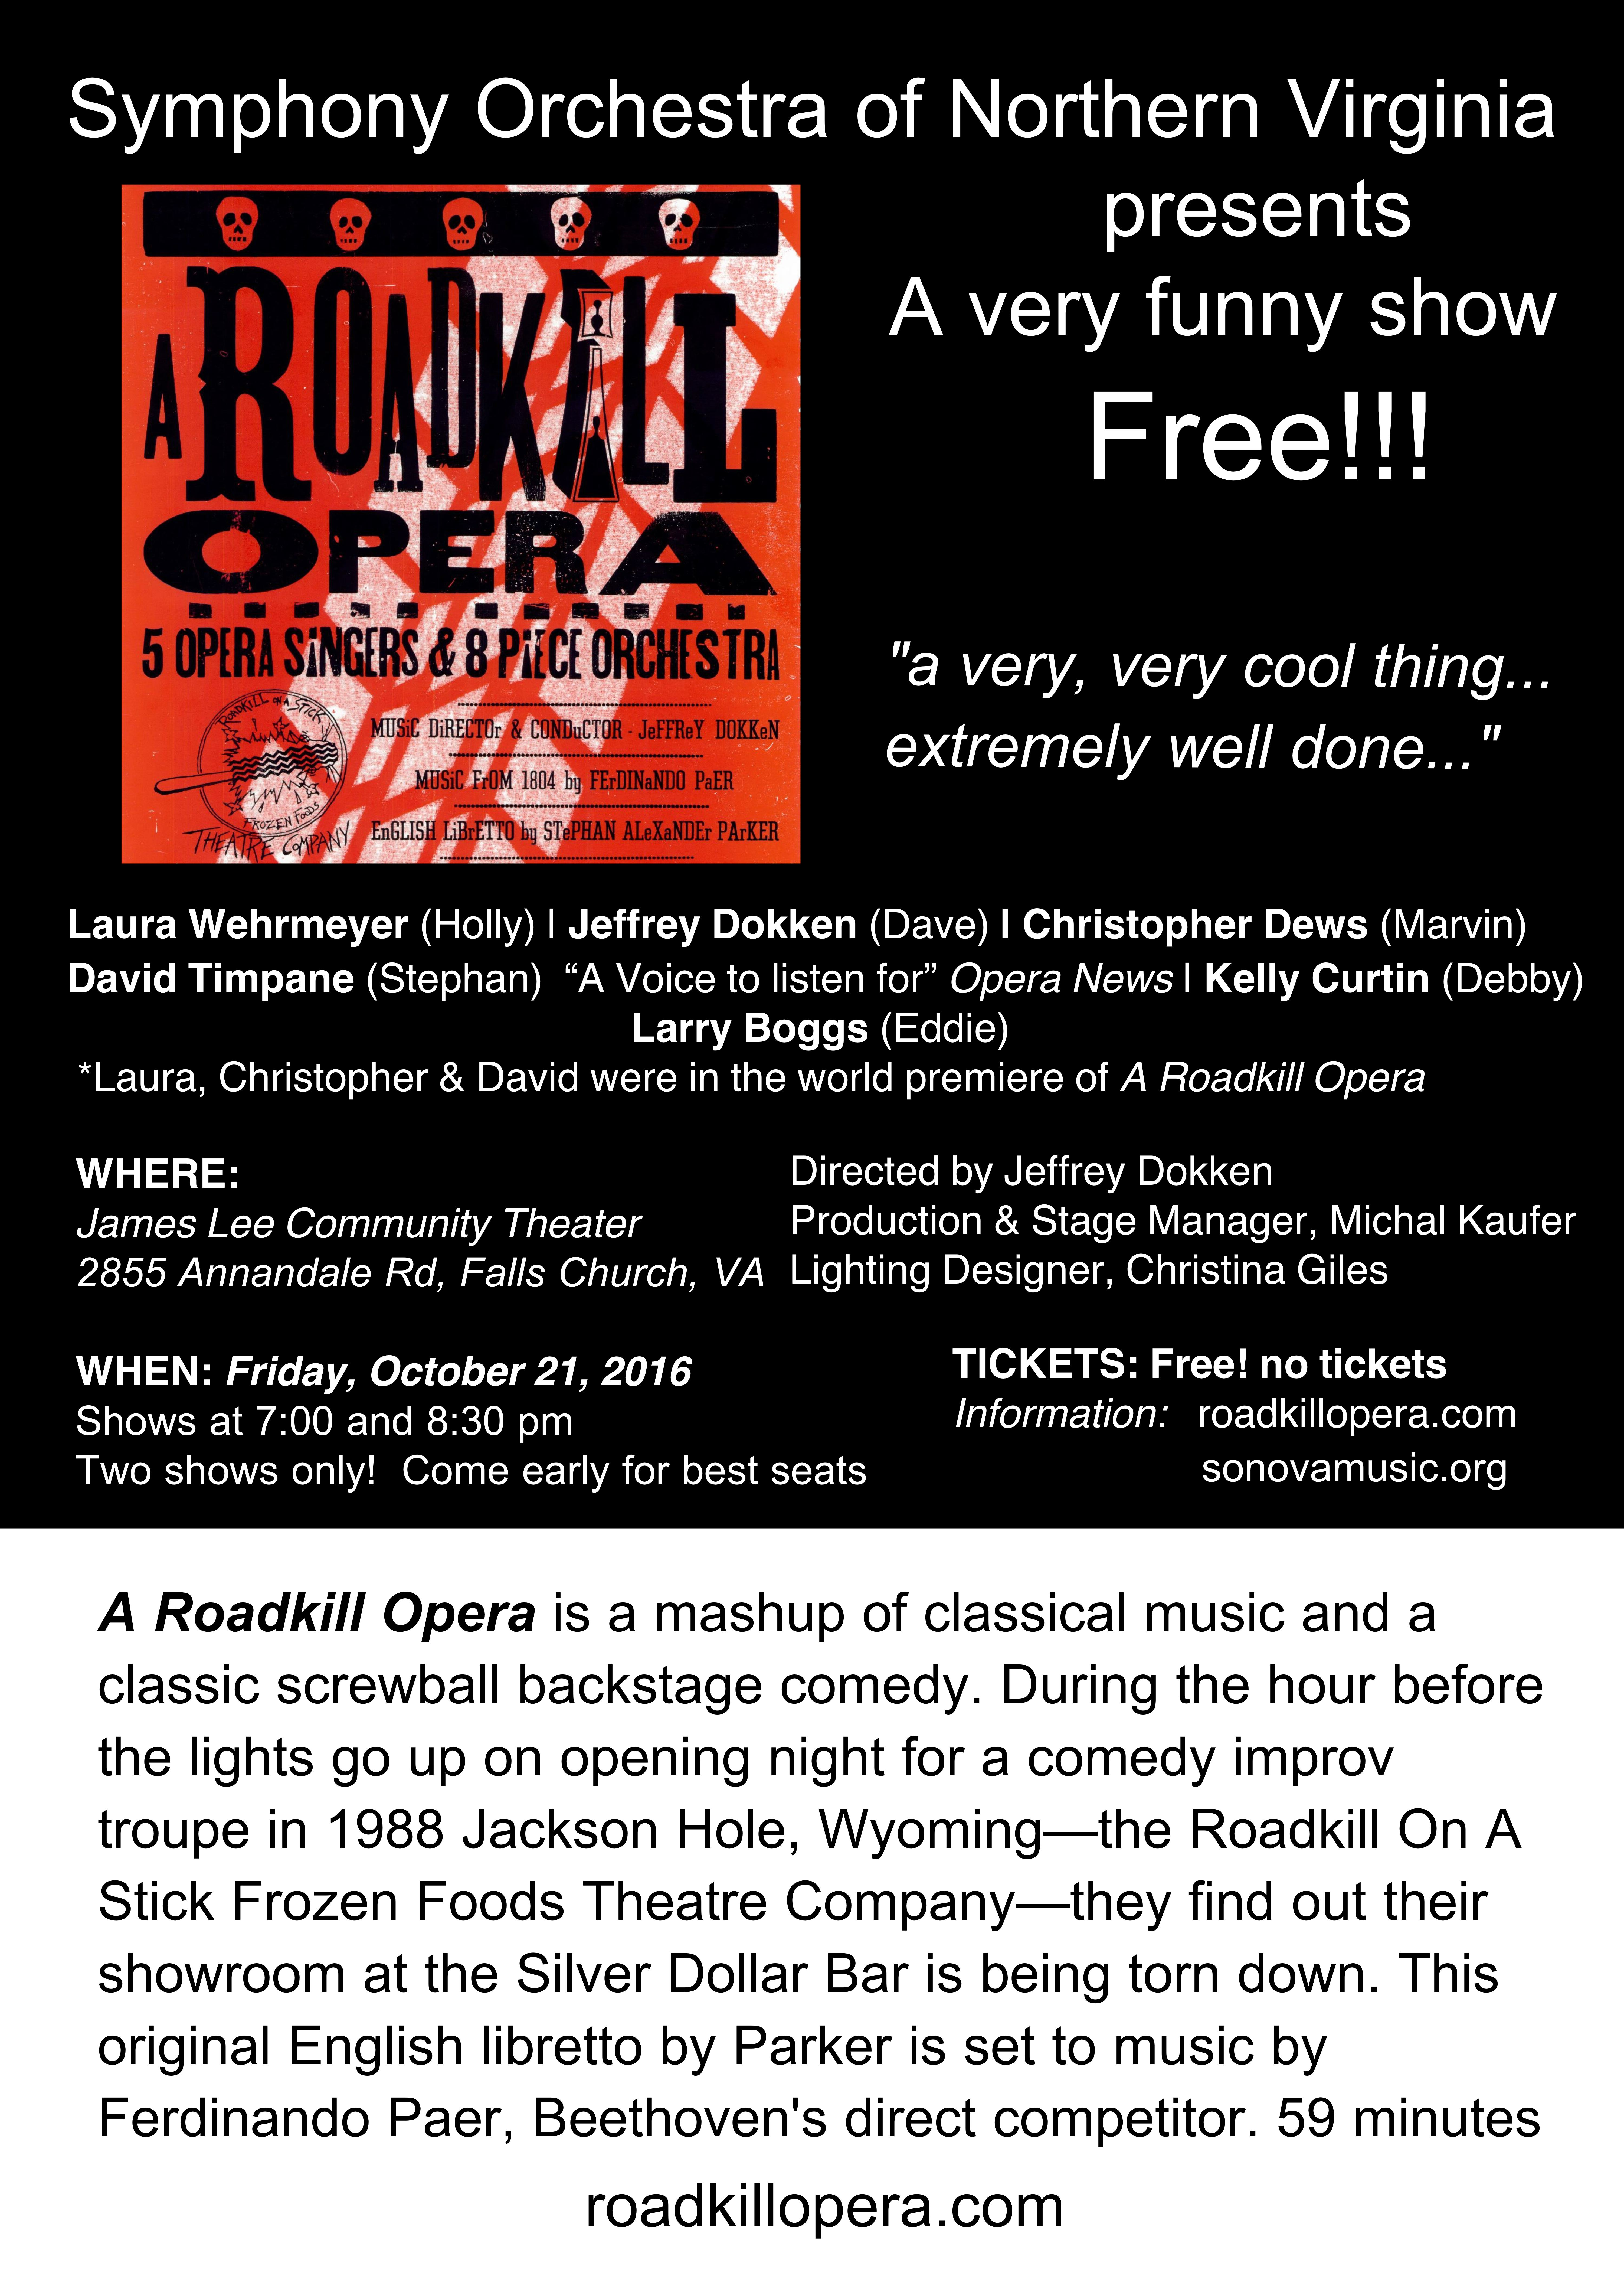 The Symphony Orchestra of Northern Virginia (SONOVA) will present two FREE performances of A Roadkill Opera at 7:00 and 8:30 pm on Friday, October 21, 2016 at the James Lee Community Theater in Falls Church, Virginia